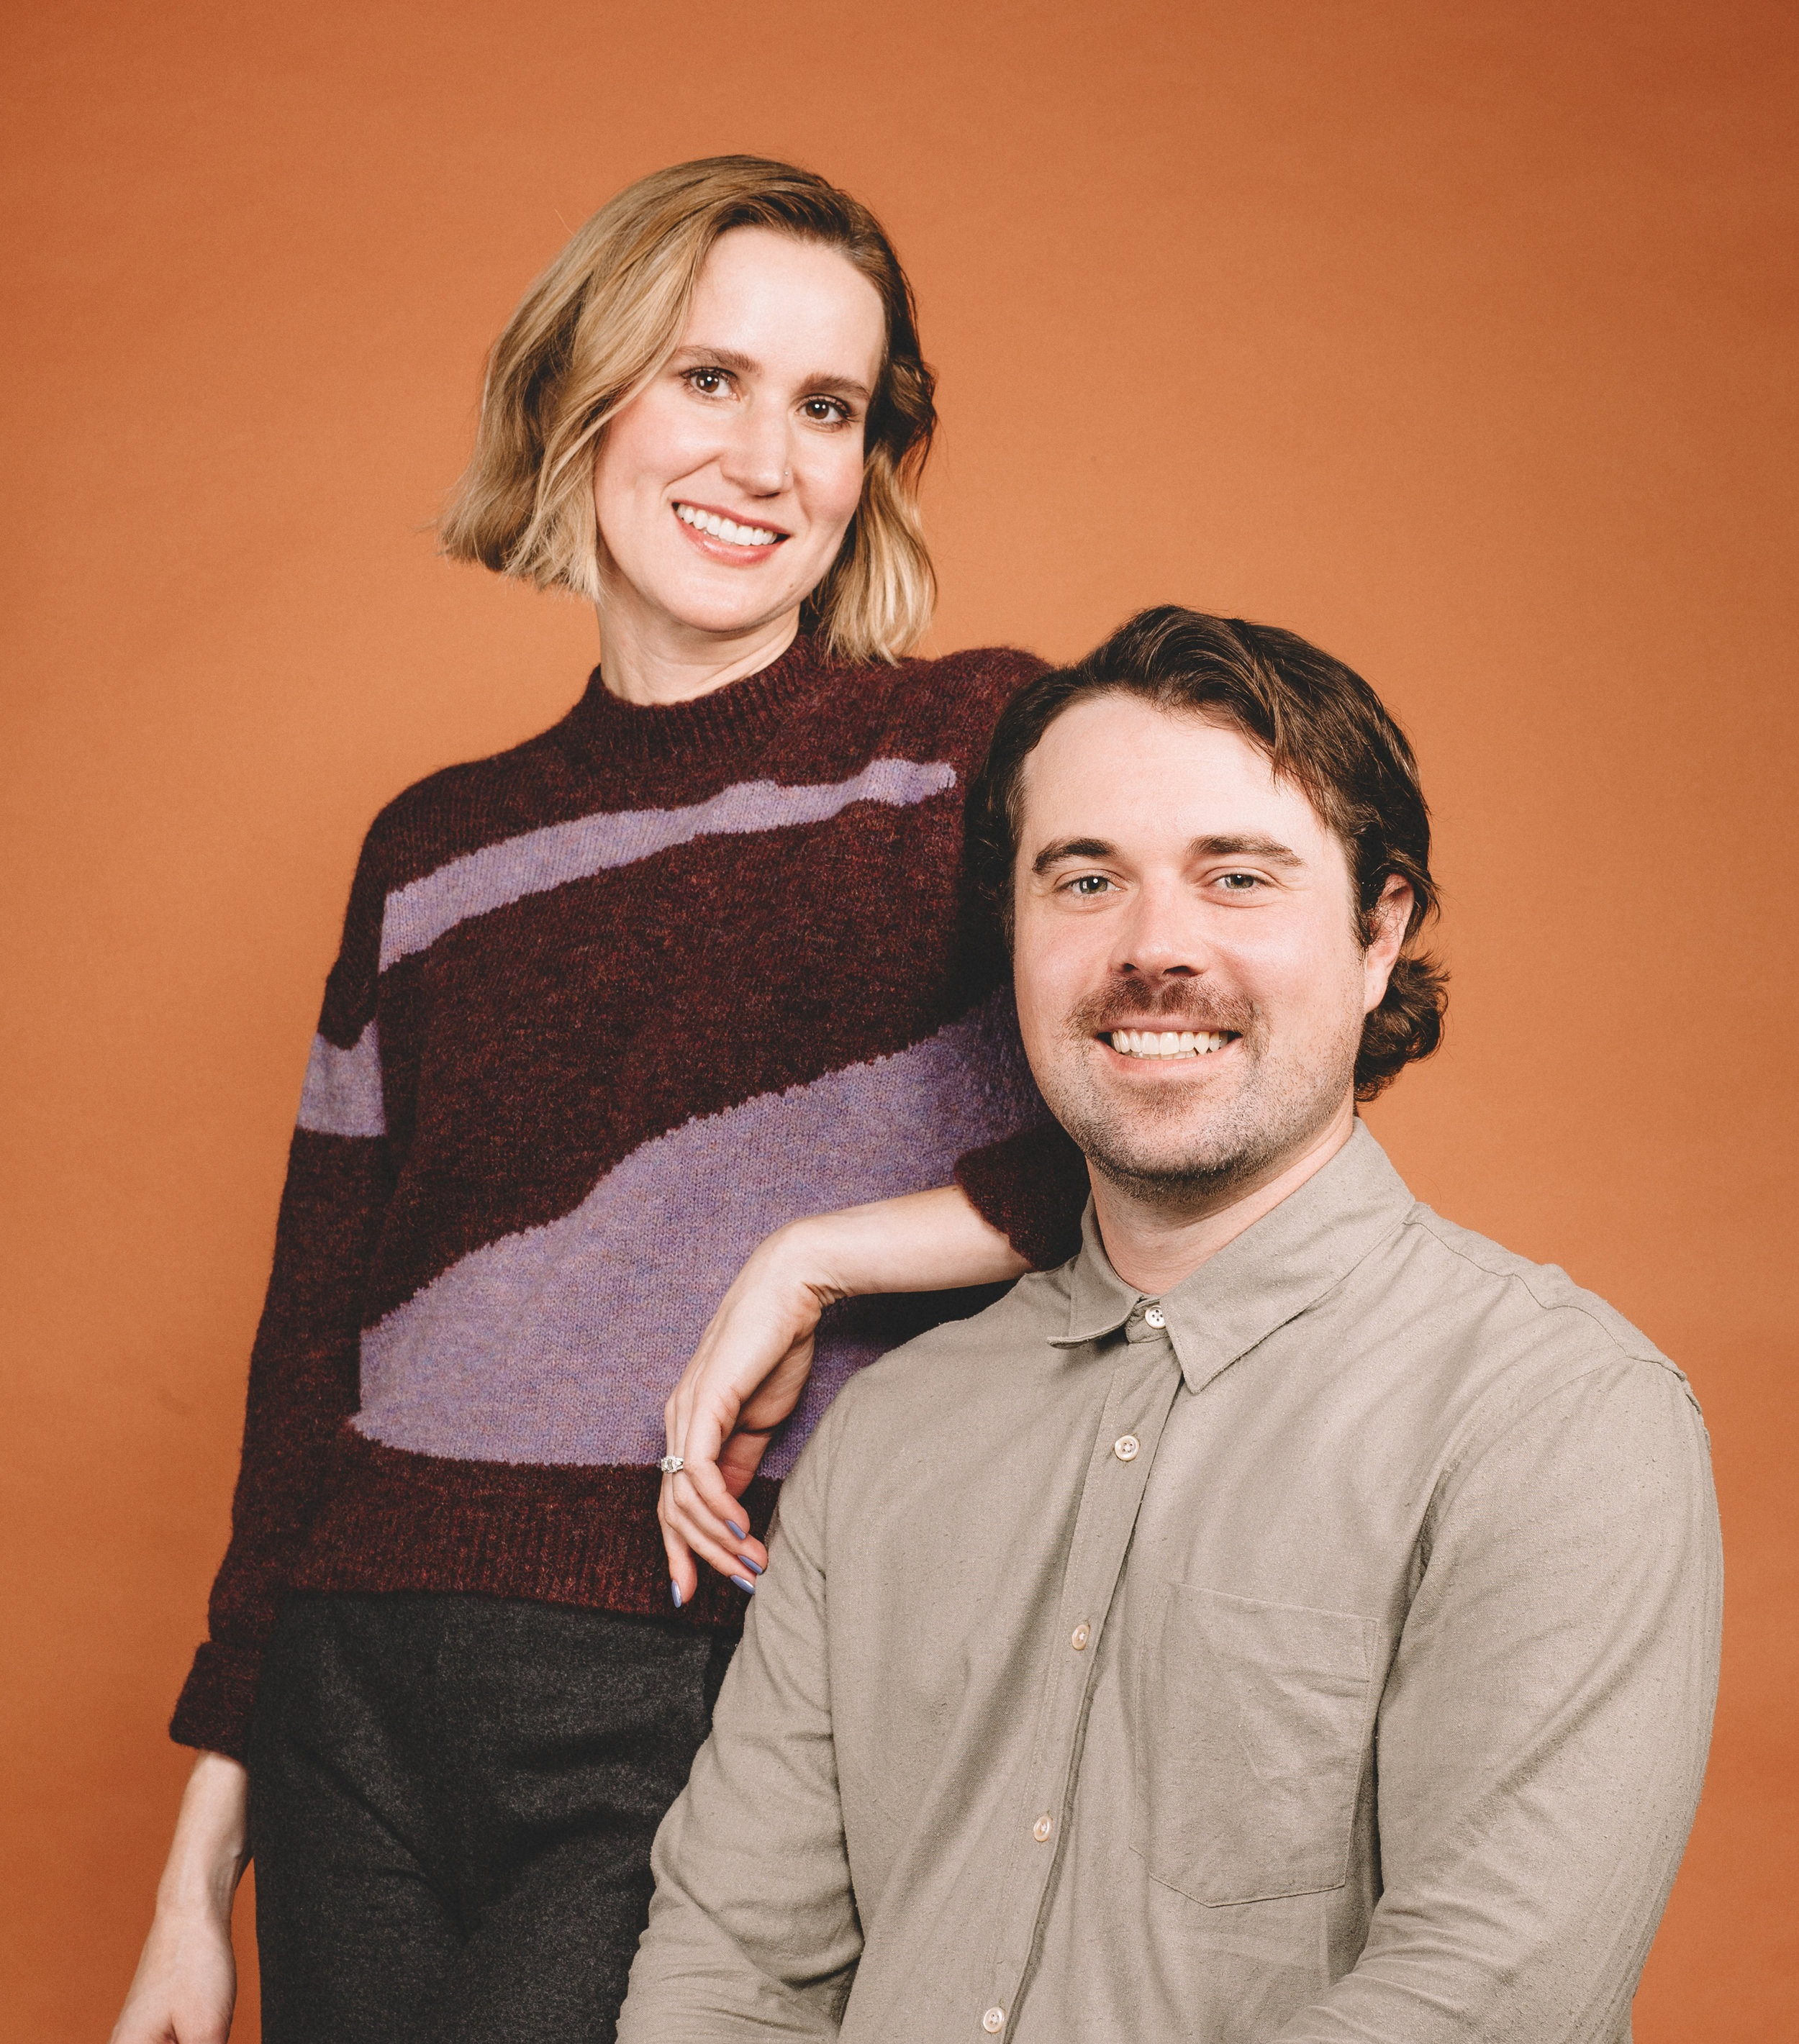 Meet our founders. - Color. was founded by entrepreneurs Jaime Schmidt and Chris Cantino in 2018. Jaime founded Schmidt's Naturals in the couple's small Portland, OR kitchen, and led the company to acquisition by Unilever in December 2017 alongside her partner Chris.Since, Jaime and Chris have focused on returning to their entrepreneurial roots. In June 2019, Color announced the launch of Supermaker, a media company that celebrates inclusive, independent brands, and hosts conversations that empower progressive values in the workplace.Additionally, the two assumed ownership of entrepreneurial collective Portland Made, which hosts educational and networking events in support of local businesses.Contact Jaime and Chris ➝